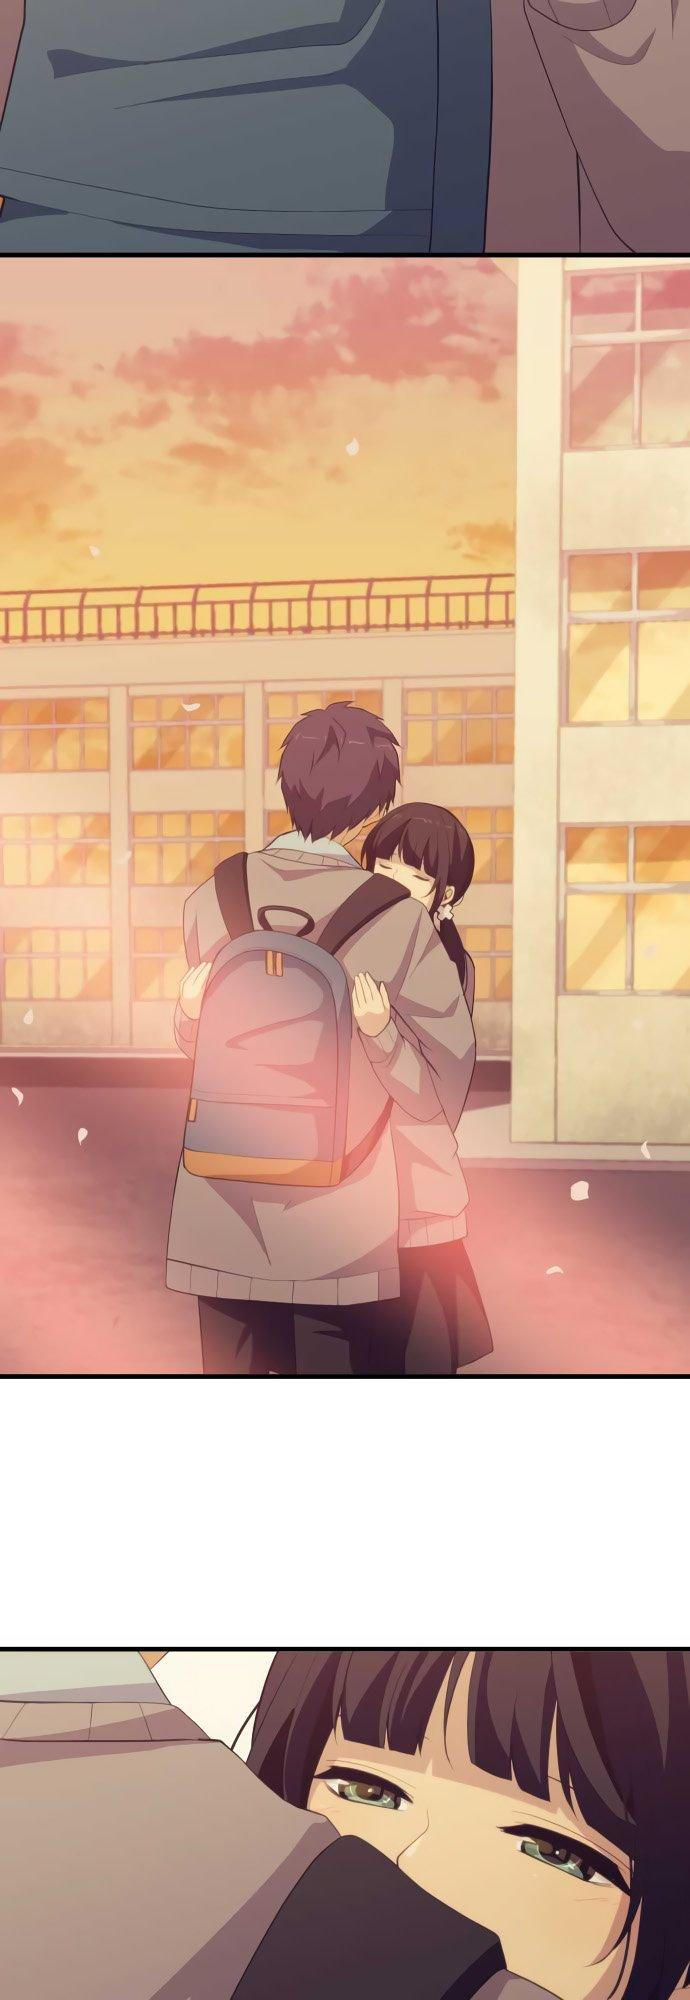 ReLIFE Chapter 213  Online Free Manga Read Image 6